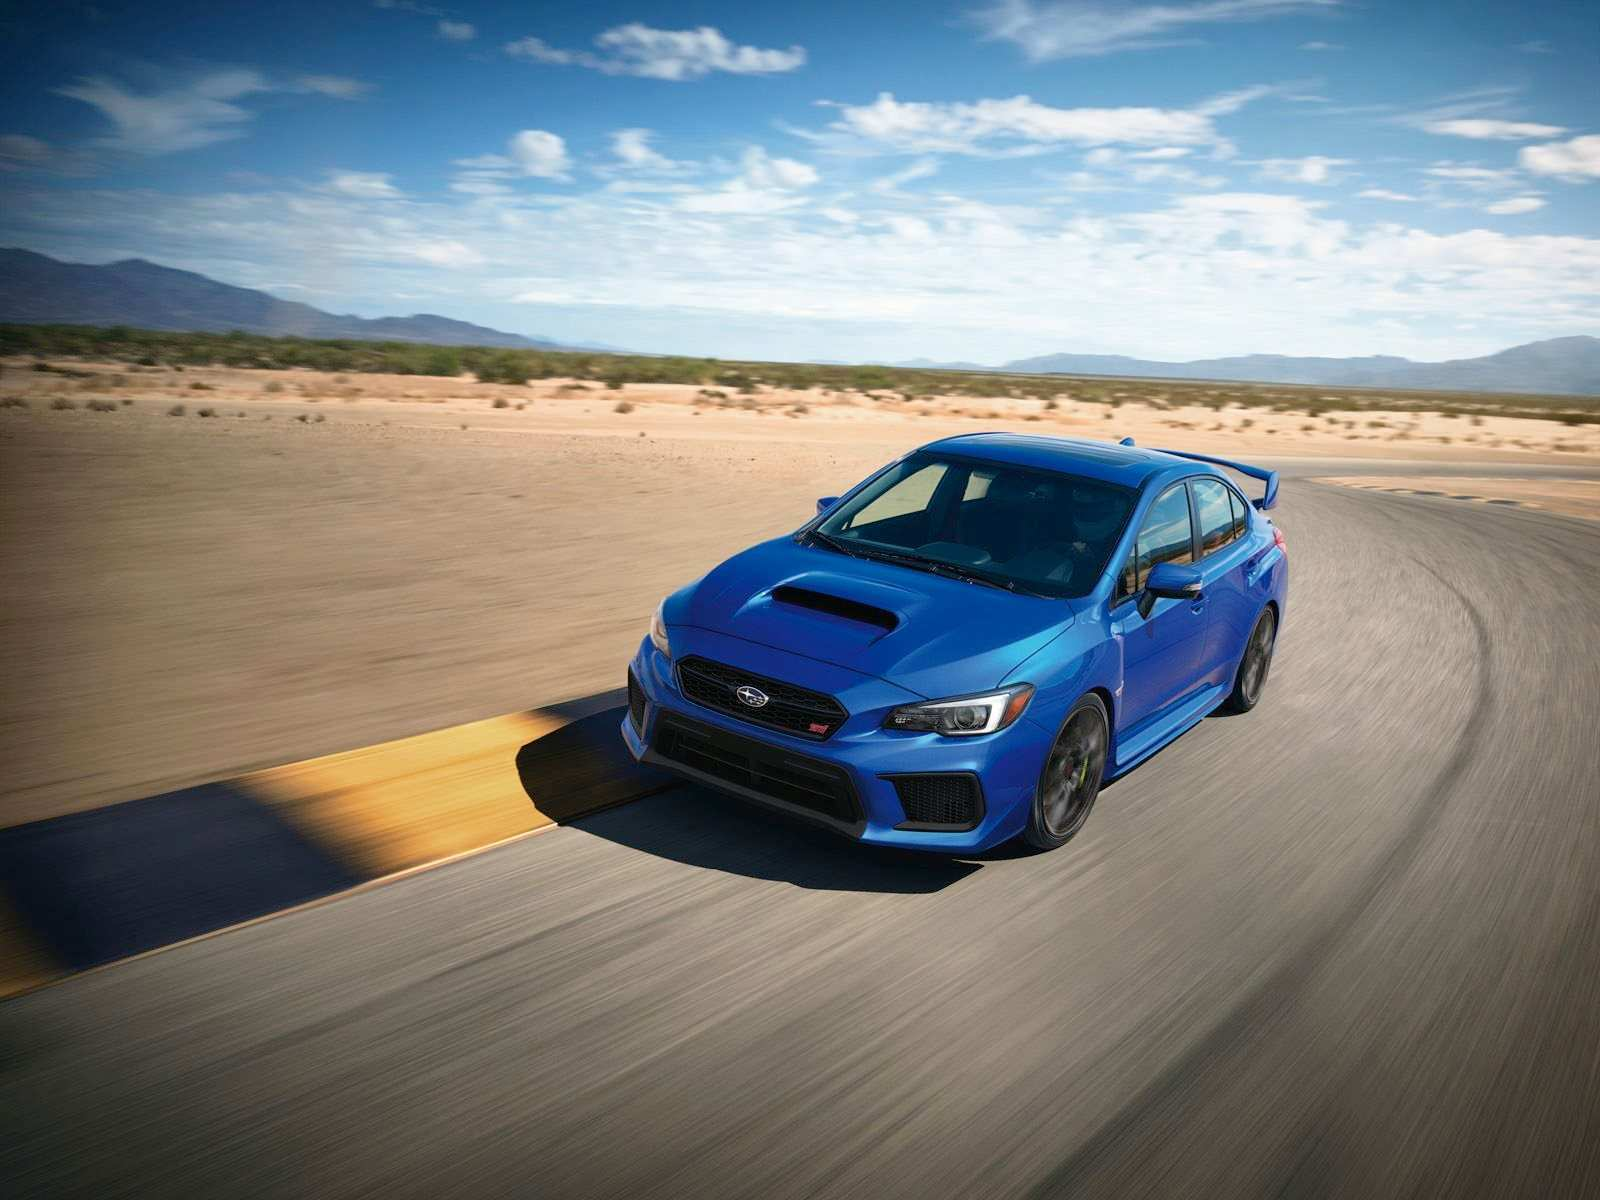 23 New 2019 Subaru Sti Ra Exterior and Interior for 2019 Subaru Sti Ra